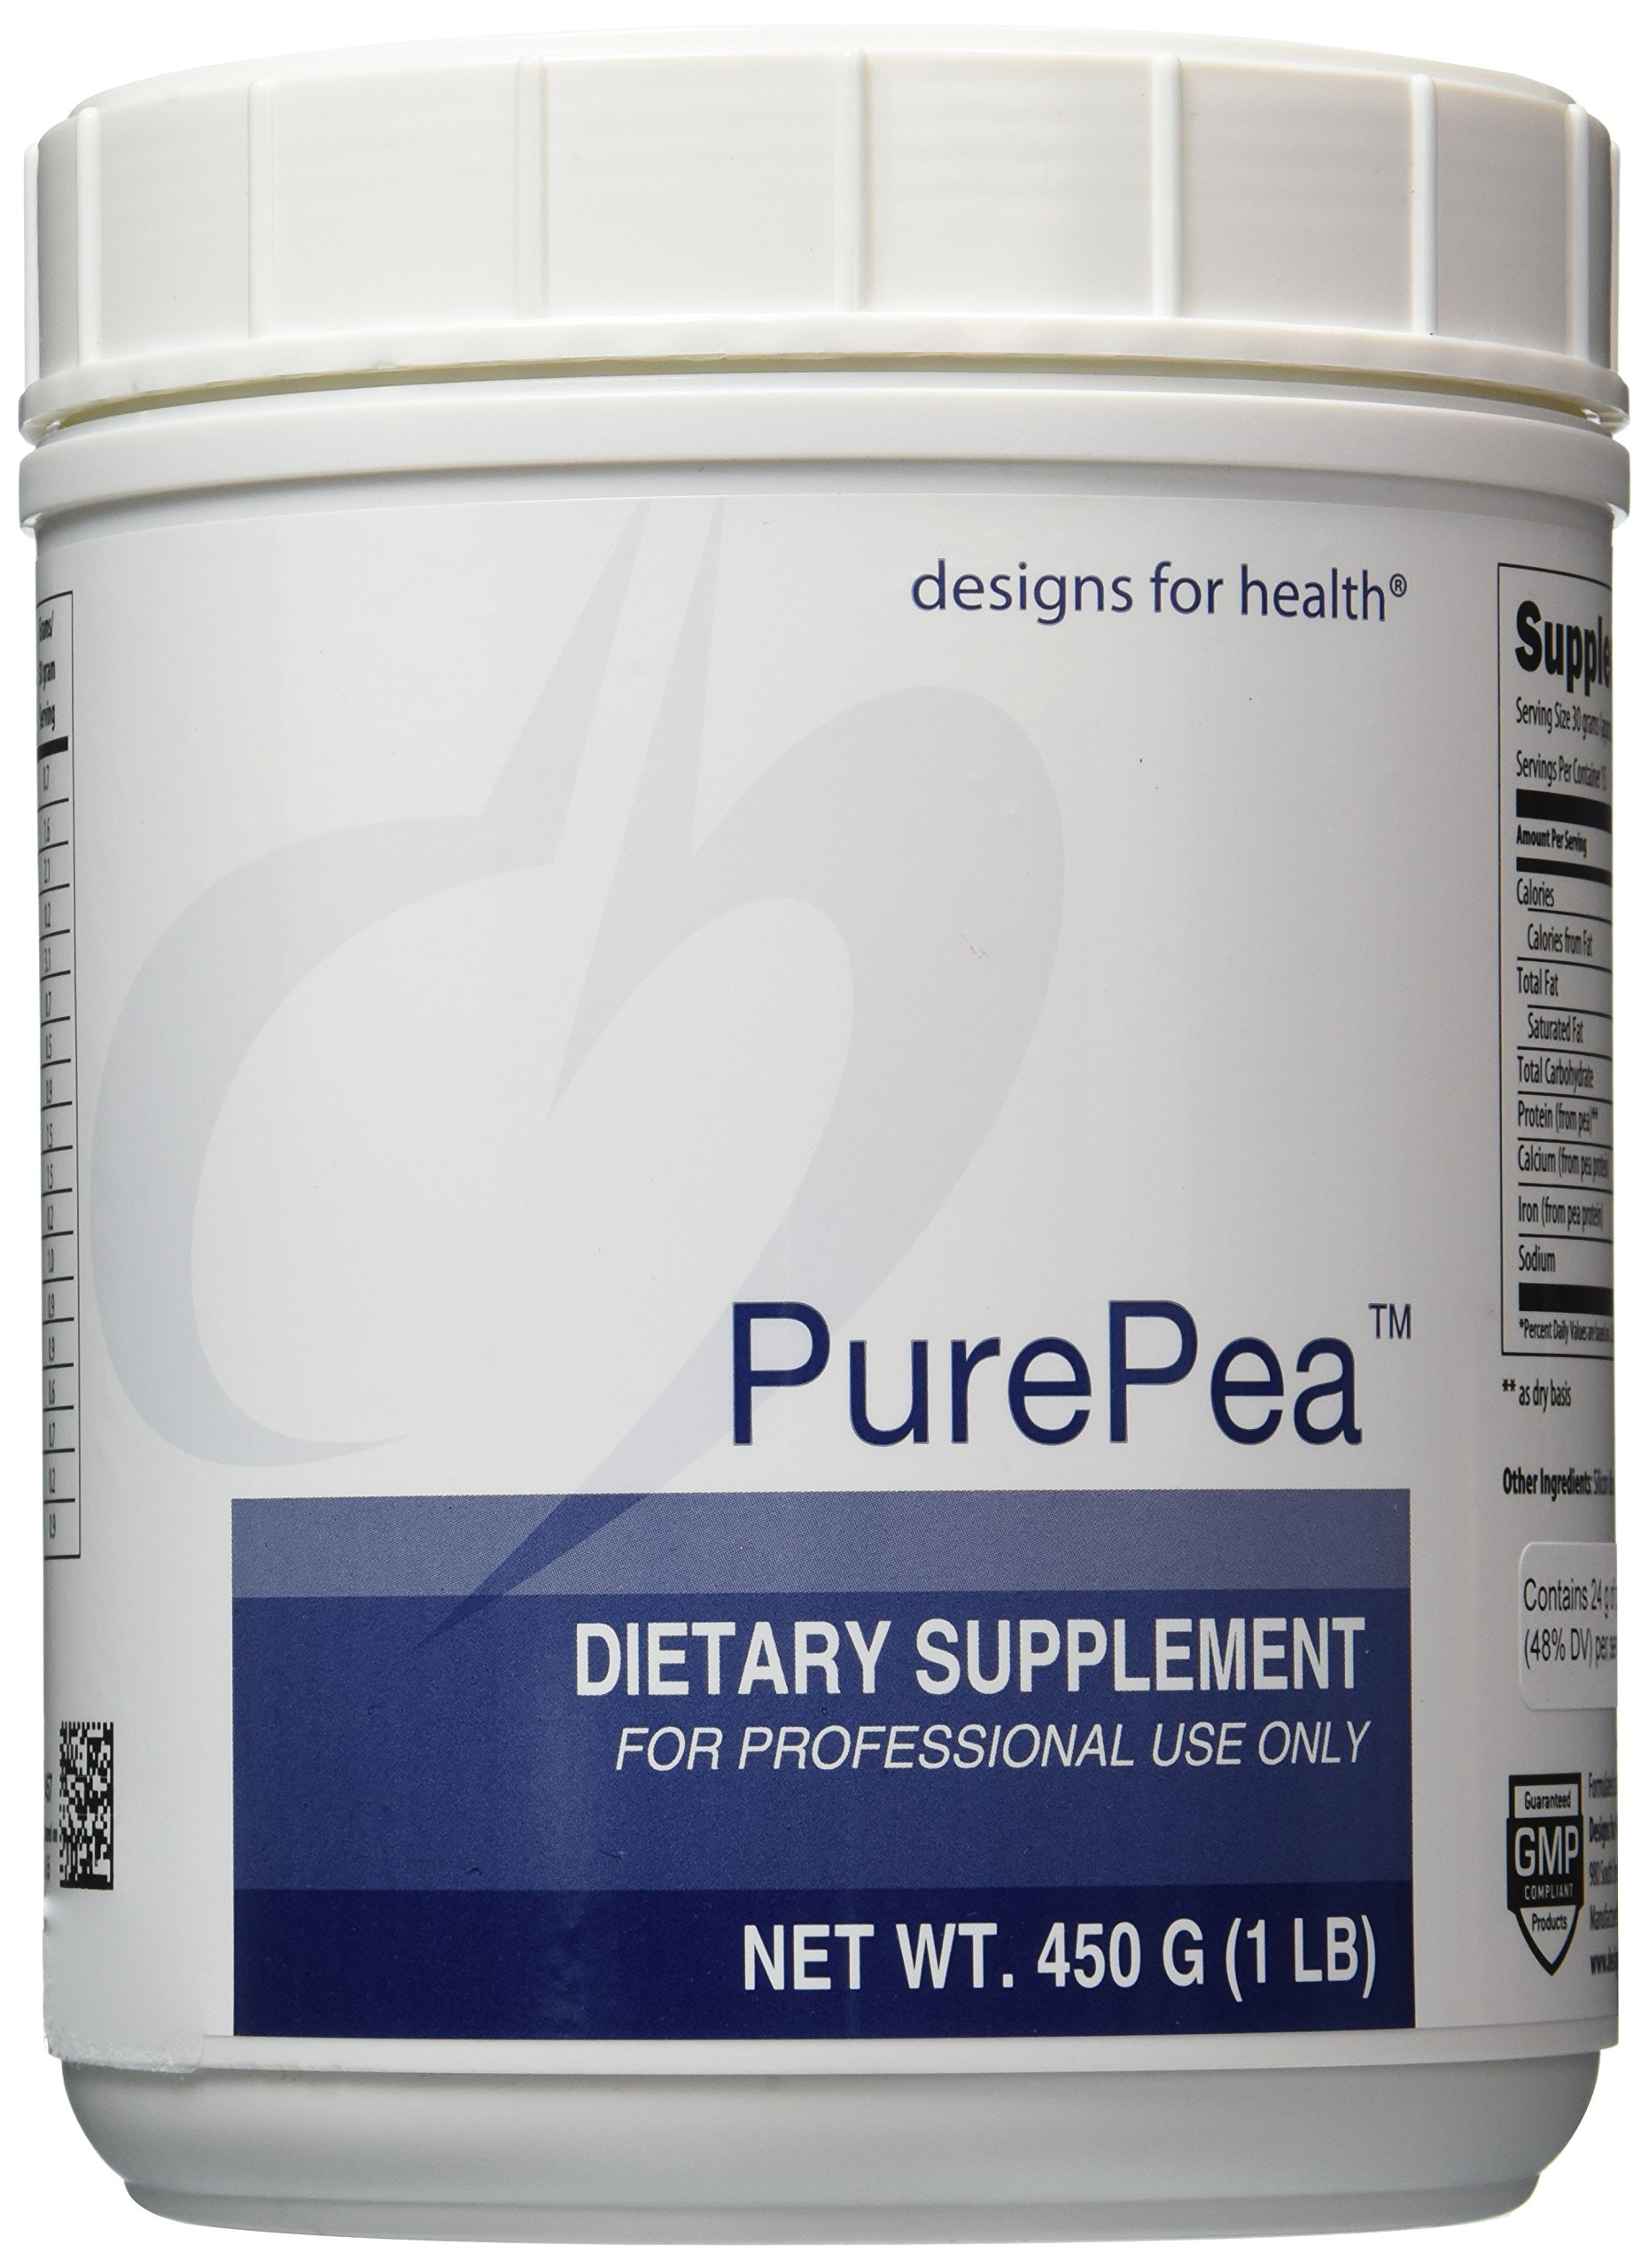 Designs for Health - PurePea Plain 450g (formerly Peatin)